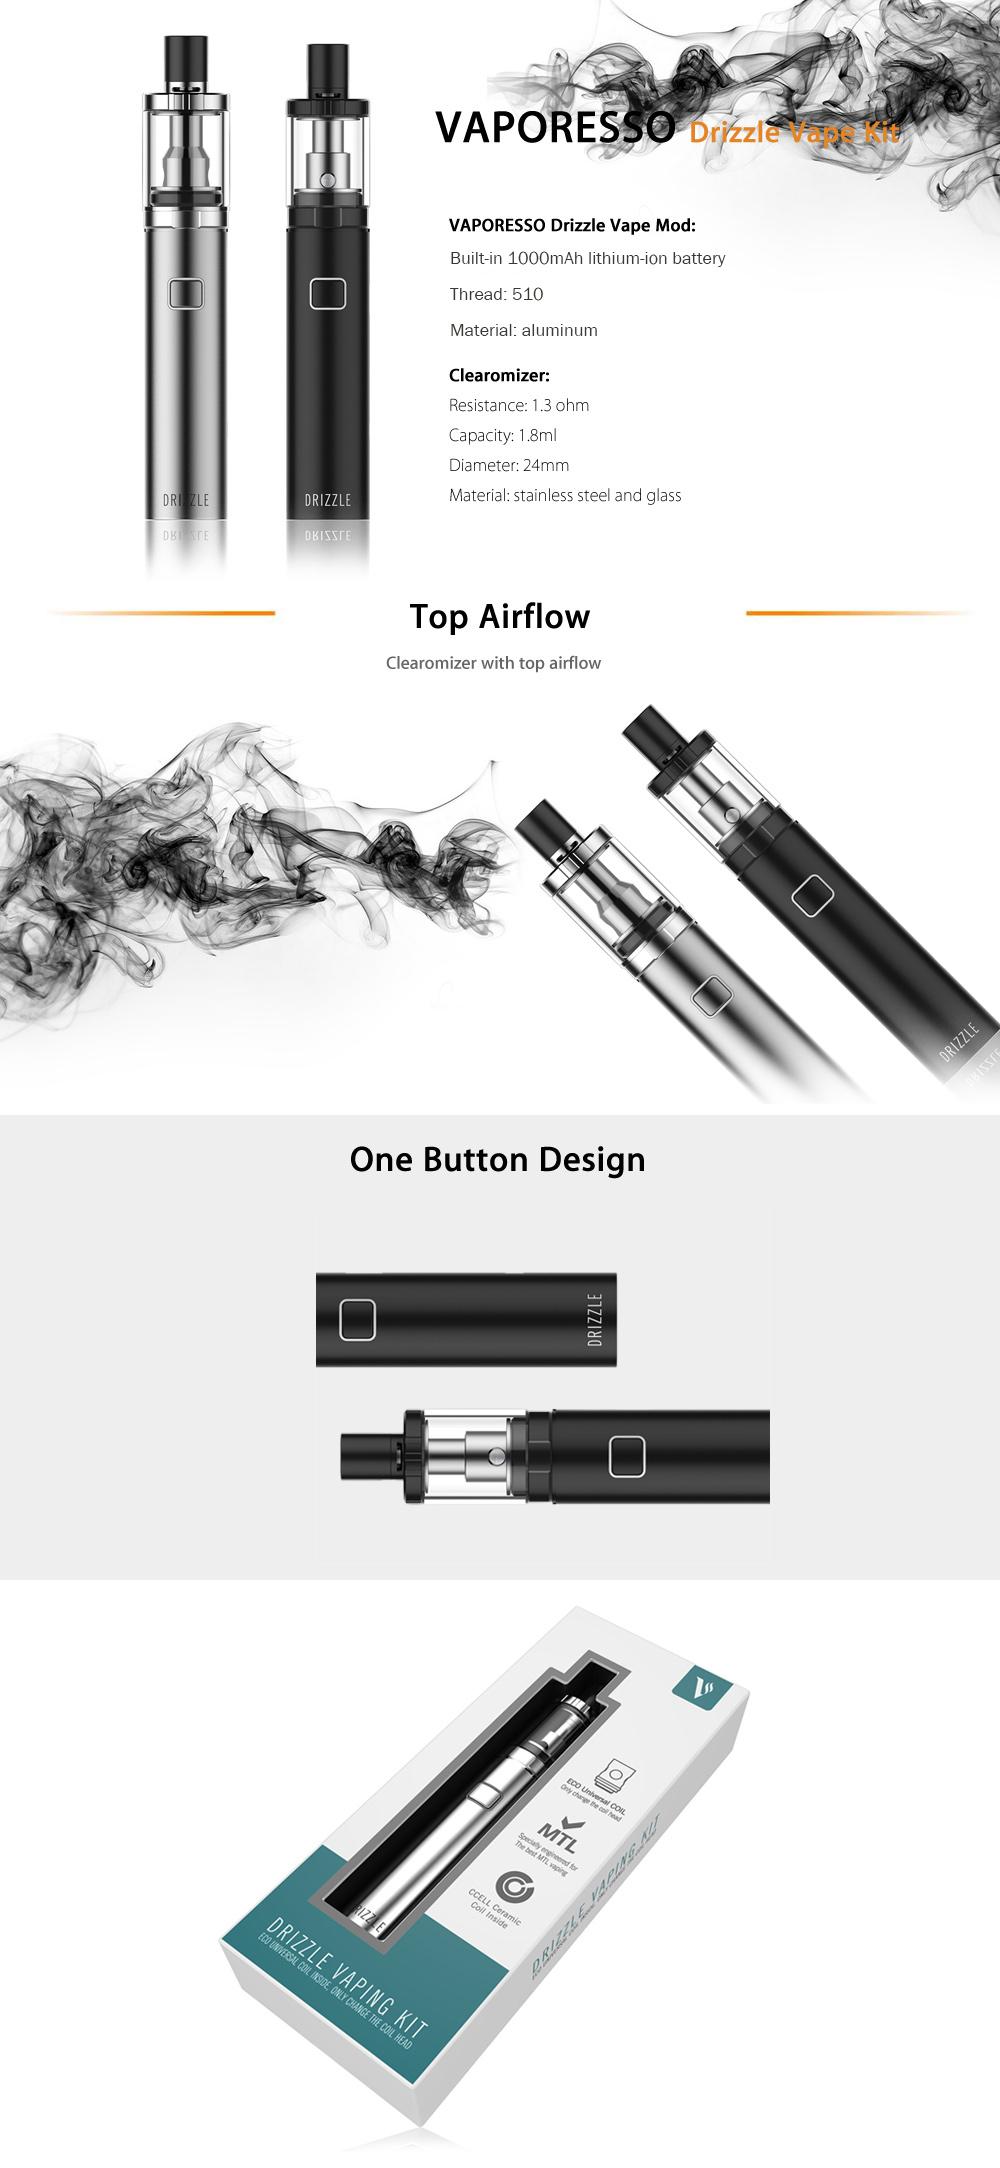 Original VAPORESSO Drizzle Vape Kit with Built-in 1000mAh Lithium-ion Battery / 1.3 ohm / 1.8ml Clearomizer for E Cigarette